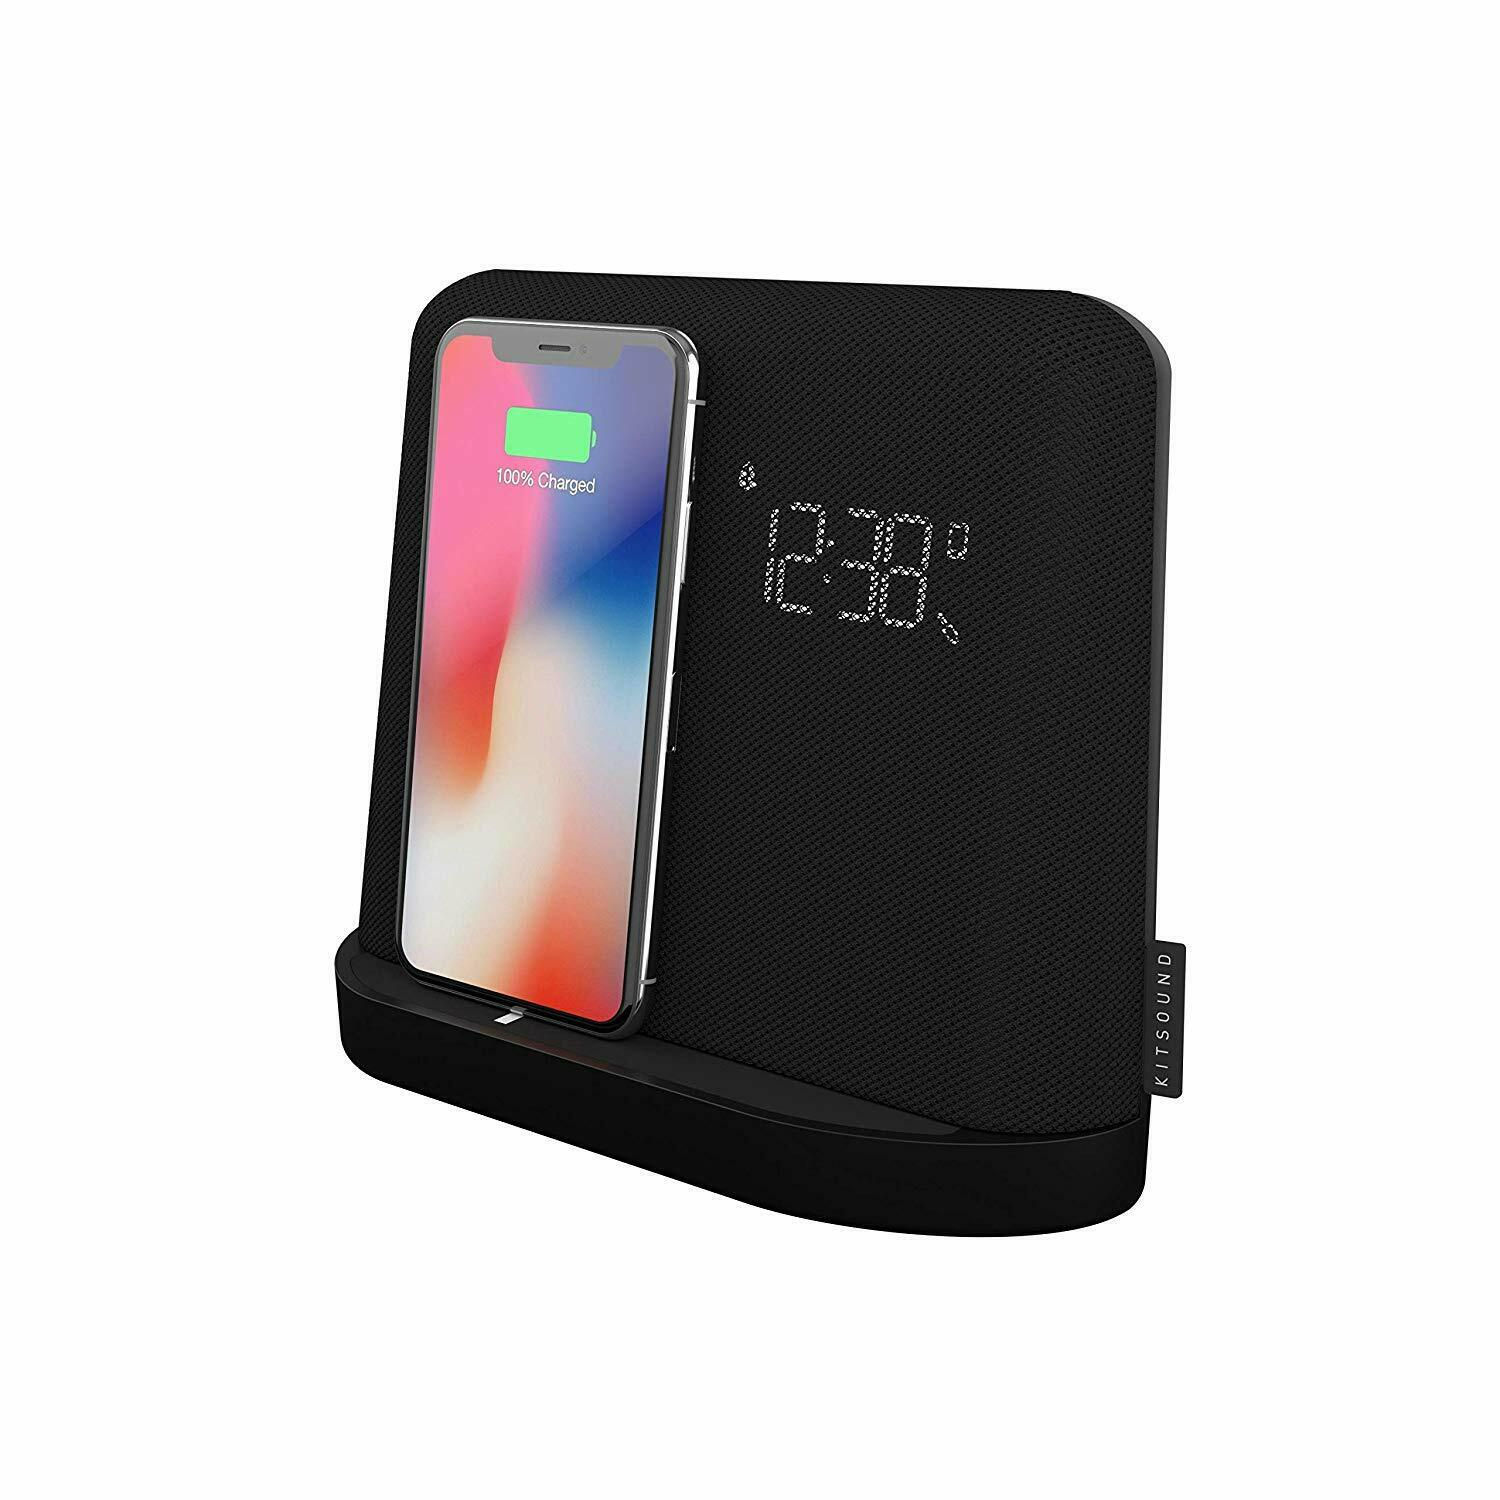 timeless design ce56b 0bcee Details about KitSound Speaker Wireless Qi Charging Docking Station for  iPhone Xs MAX X 8 8